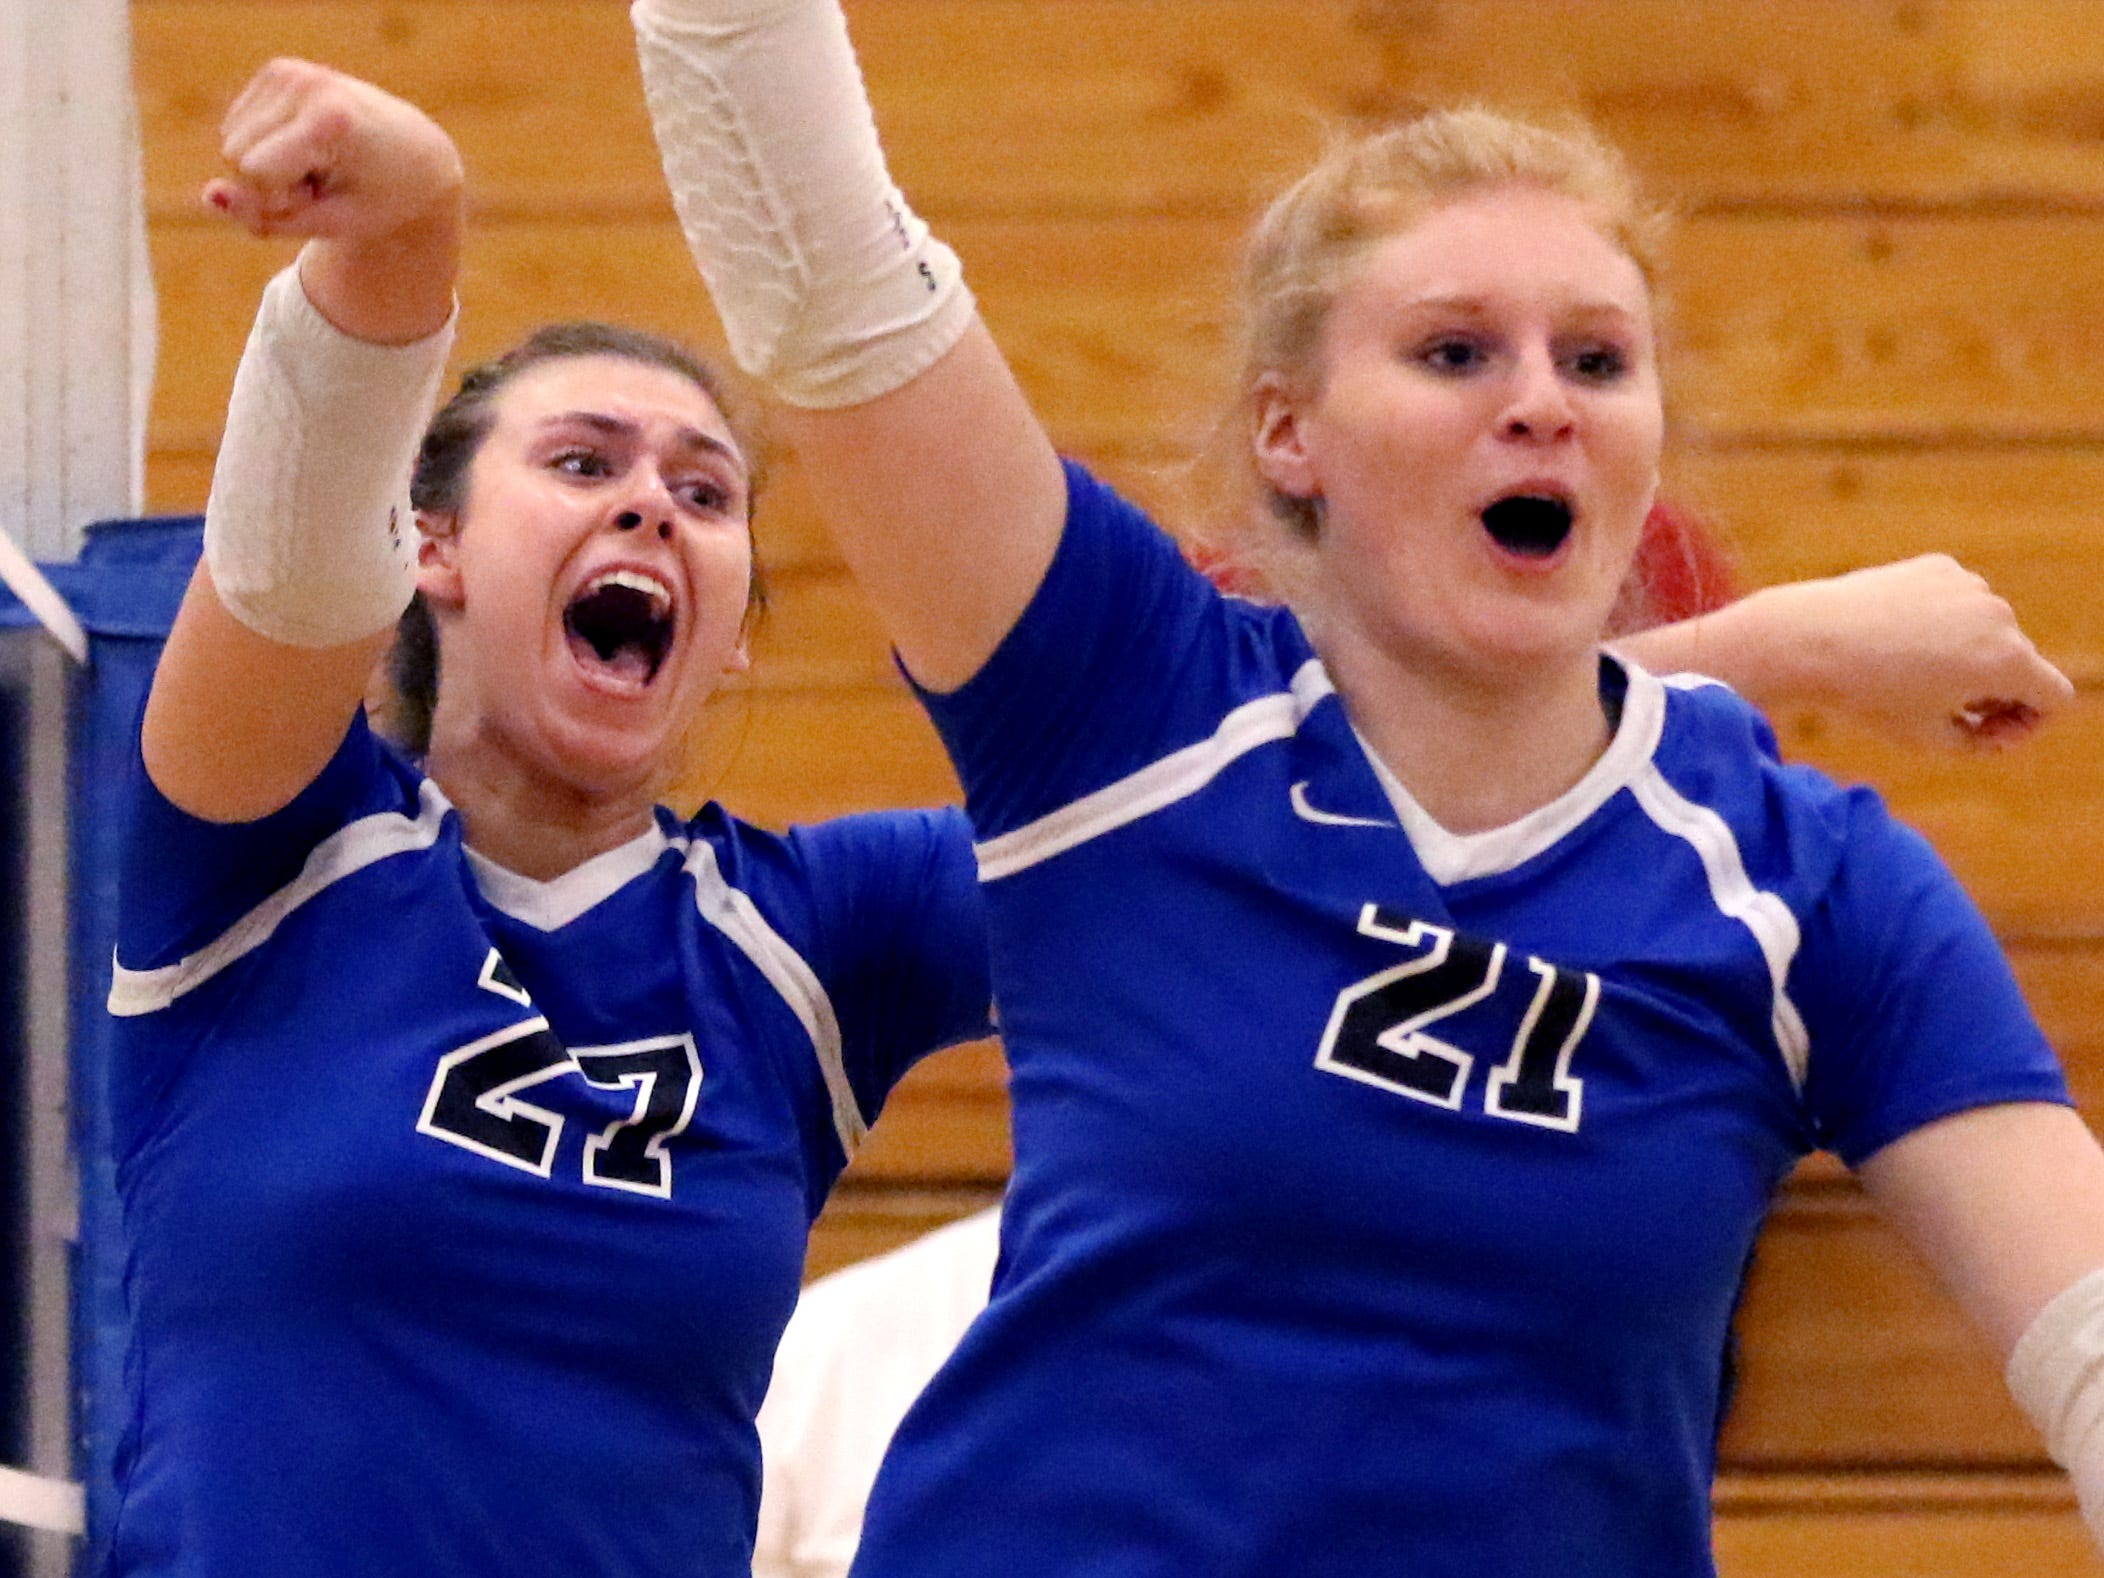 Waukesha West's Lauren Dabey (left) and Anna Nerad celebrate a point against Mukwonago during a WIAA Division 1 sectional final at Kettle Moraine on Oct. 27. The Wolverines defeated Mukwonago in four sets to advance to the state tournament.